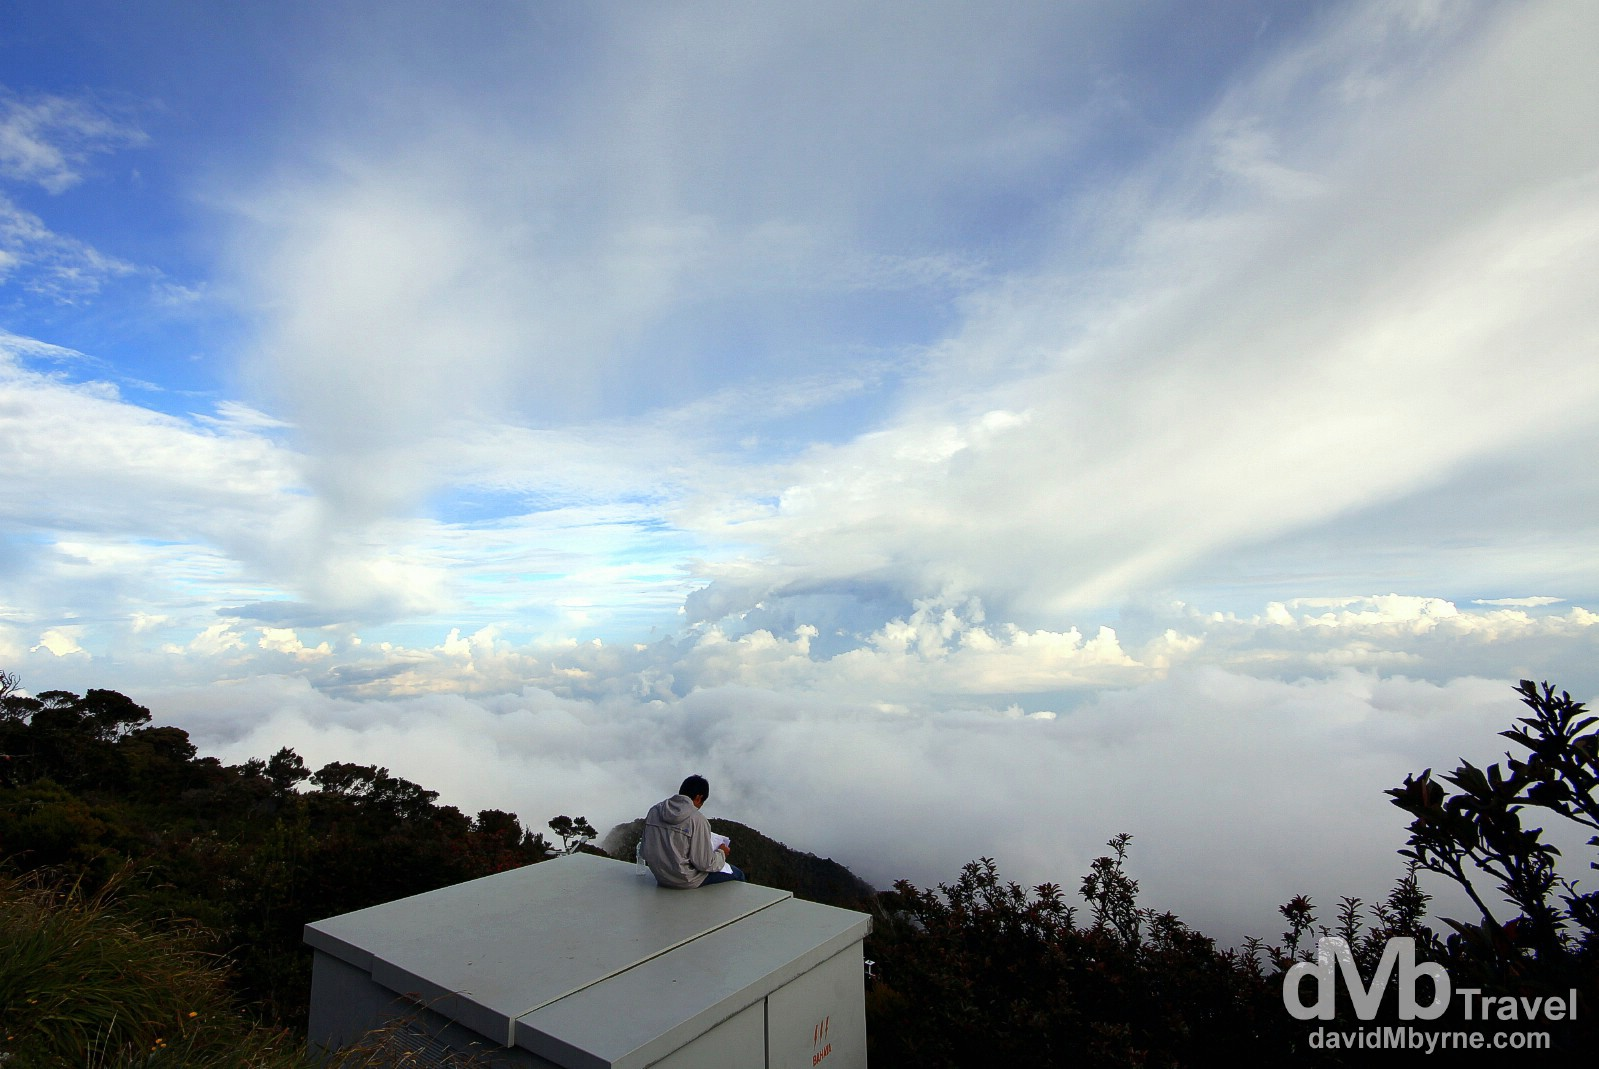 Above the clouds at Laban Rata high on the slopes of Mount Kinabalu, Sabah, Malaysian Borneo. June 22nd 2012.